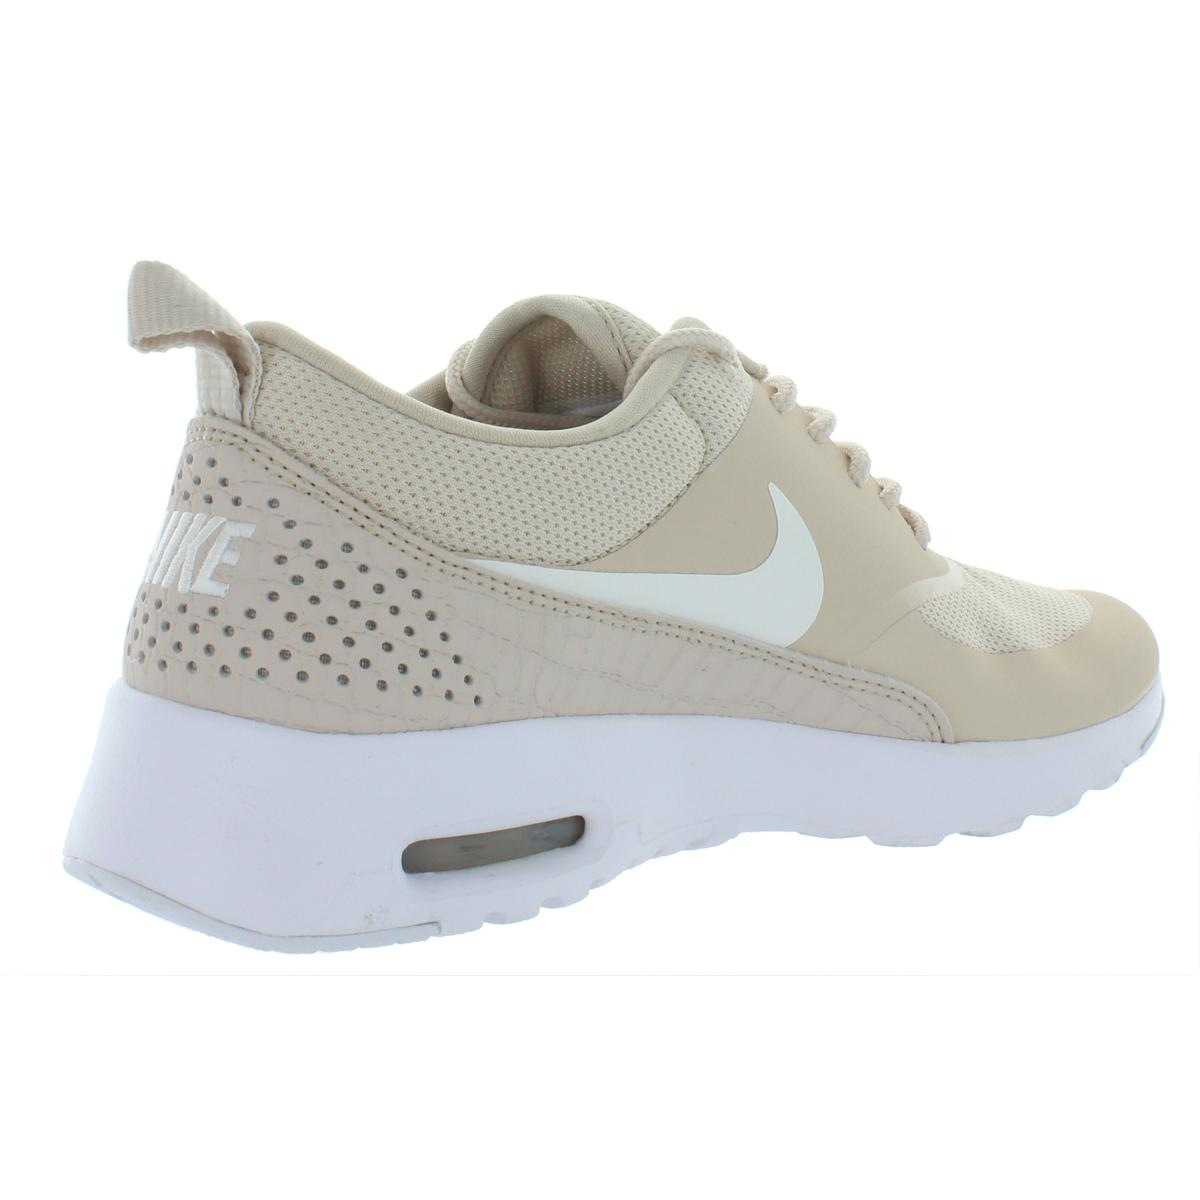 eb4f1d8de3 Nike Womens Air Max Thea Running Walking Athletic Shoes Sneakers ...